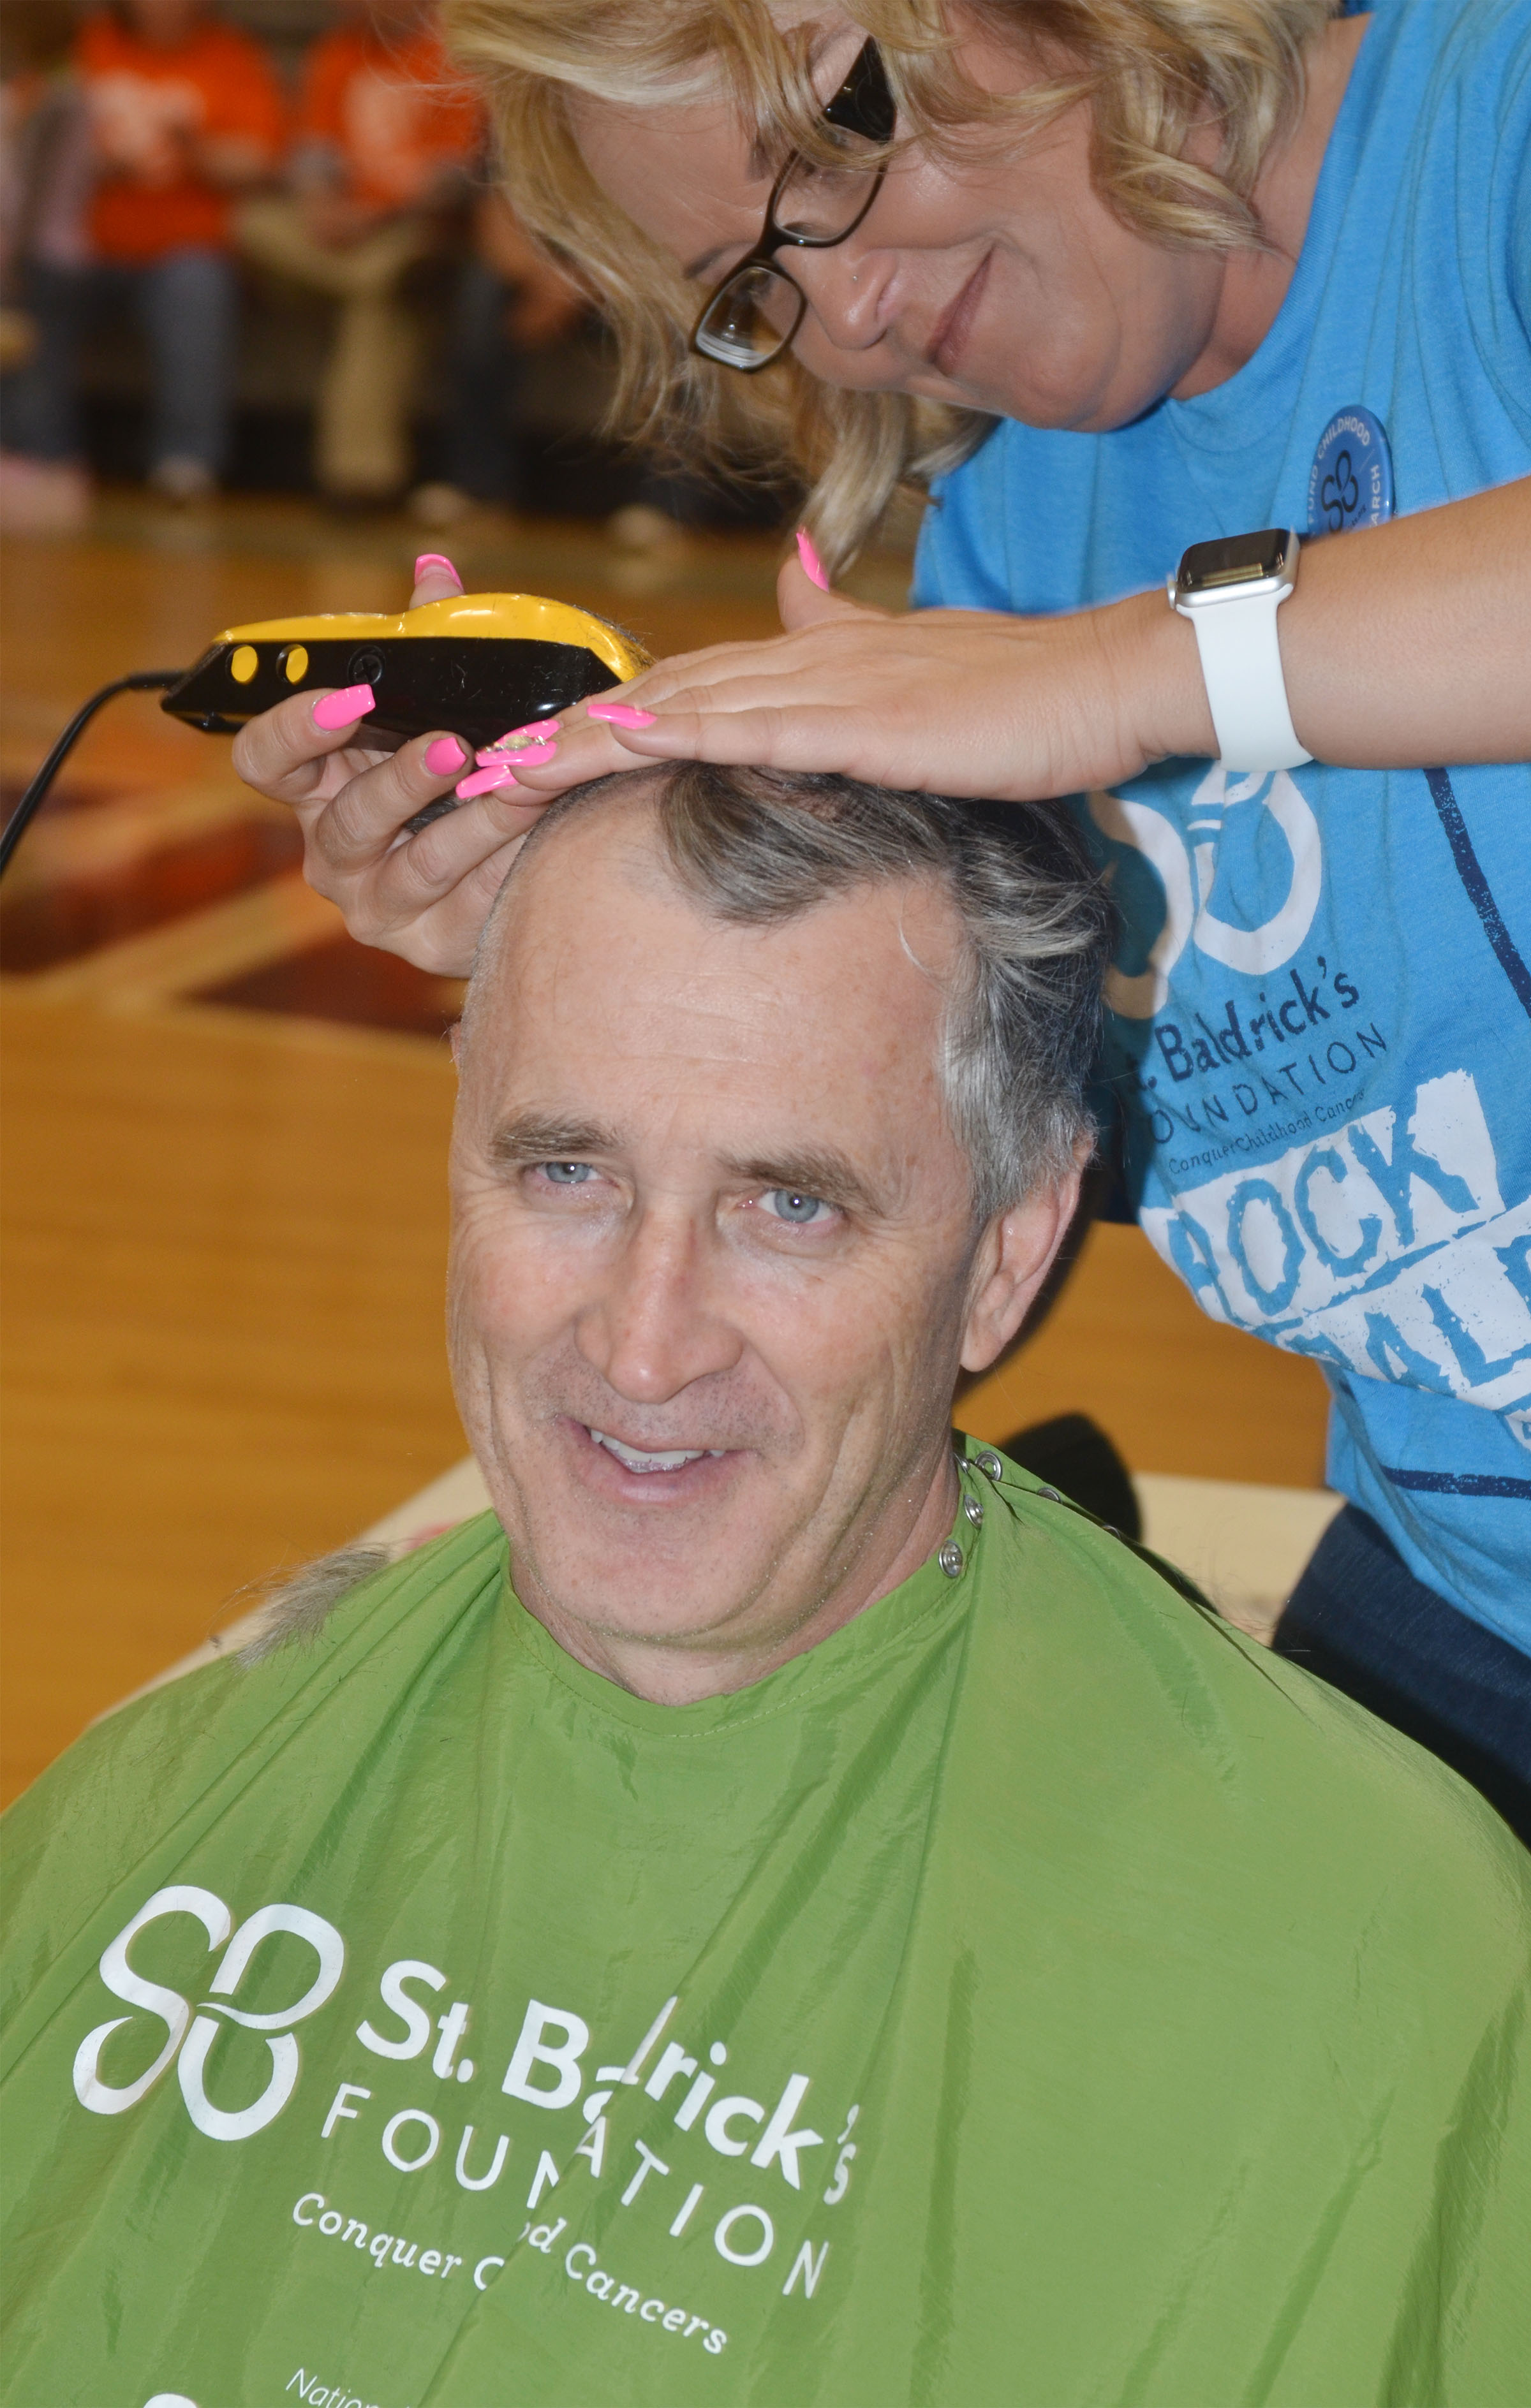 Director of Pupil Personnel/Food Services Jeff Richardson has his head shaved to raise money for children's cancer research.